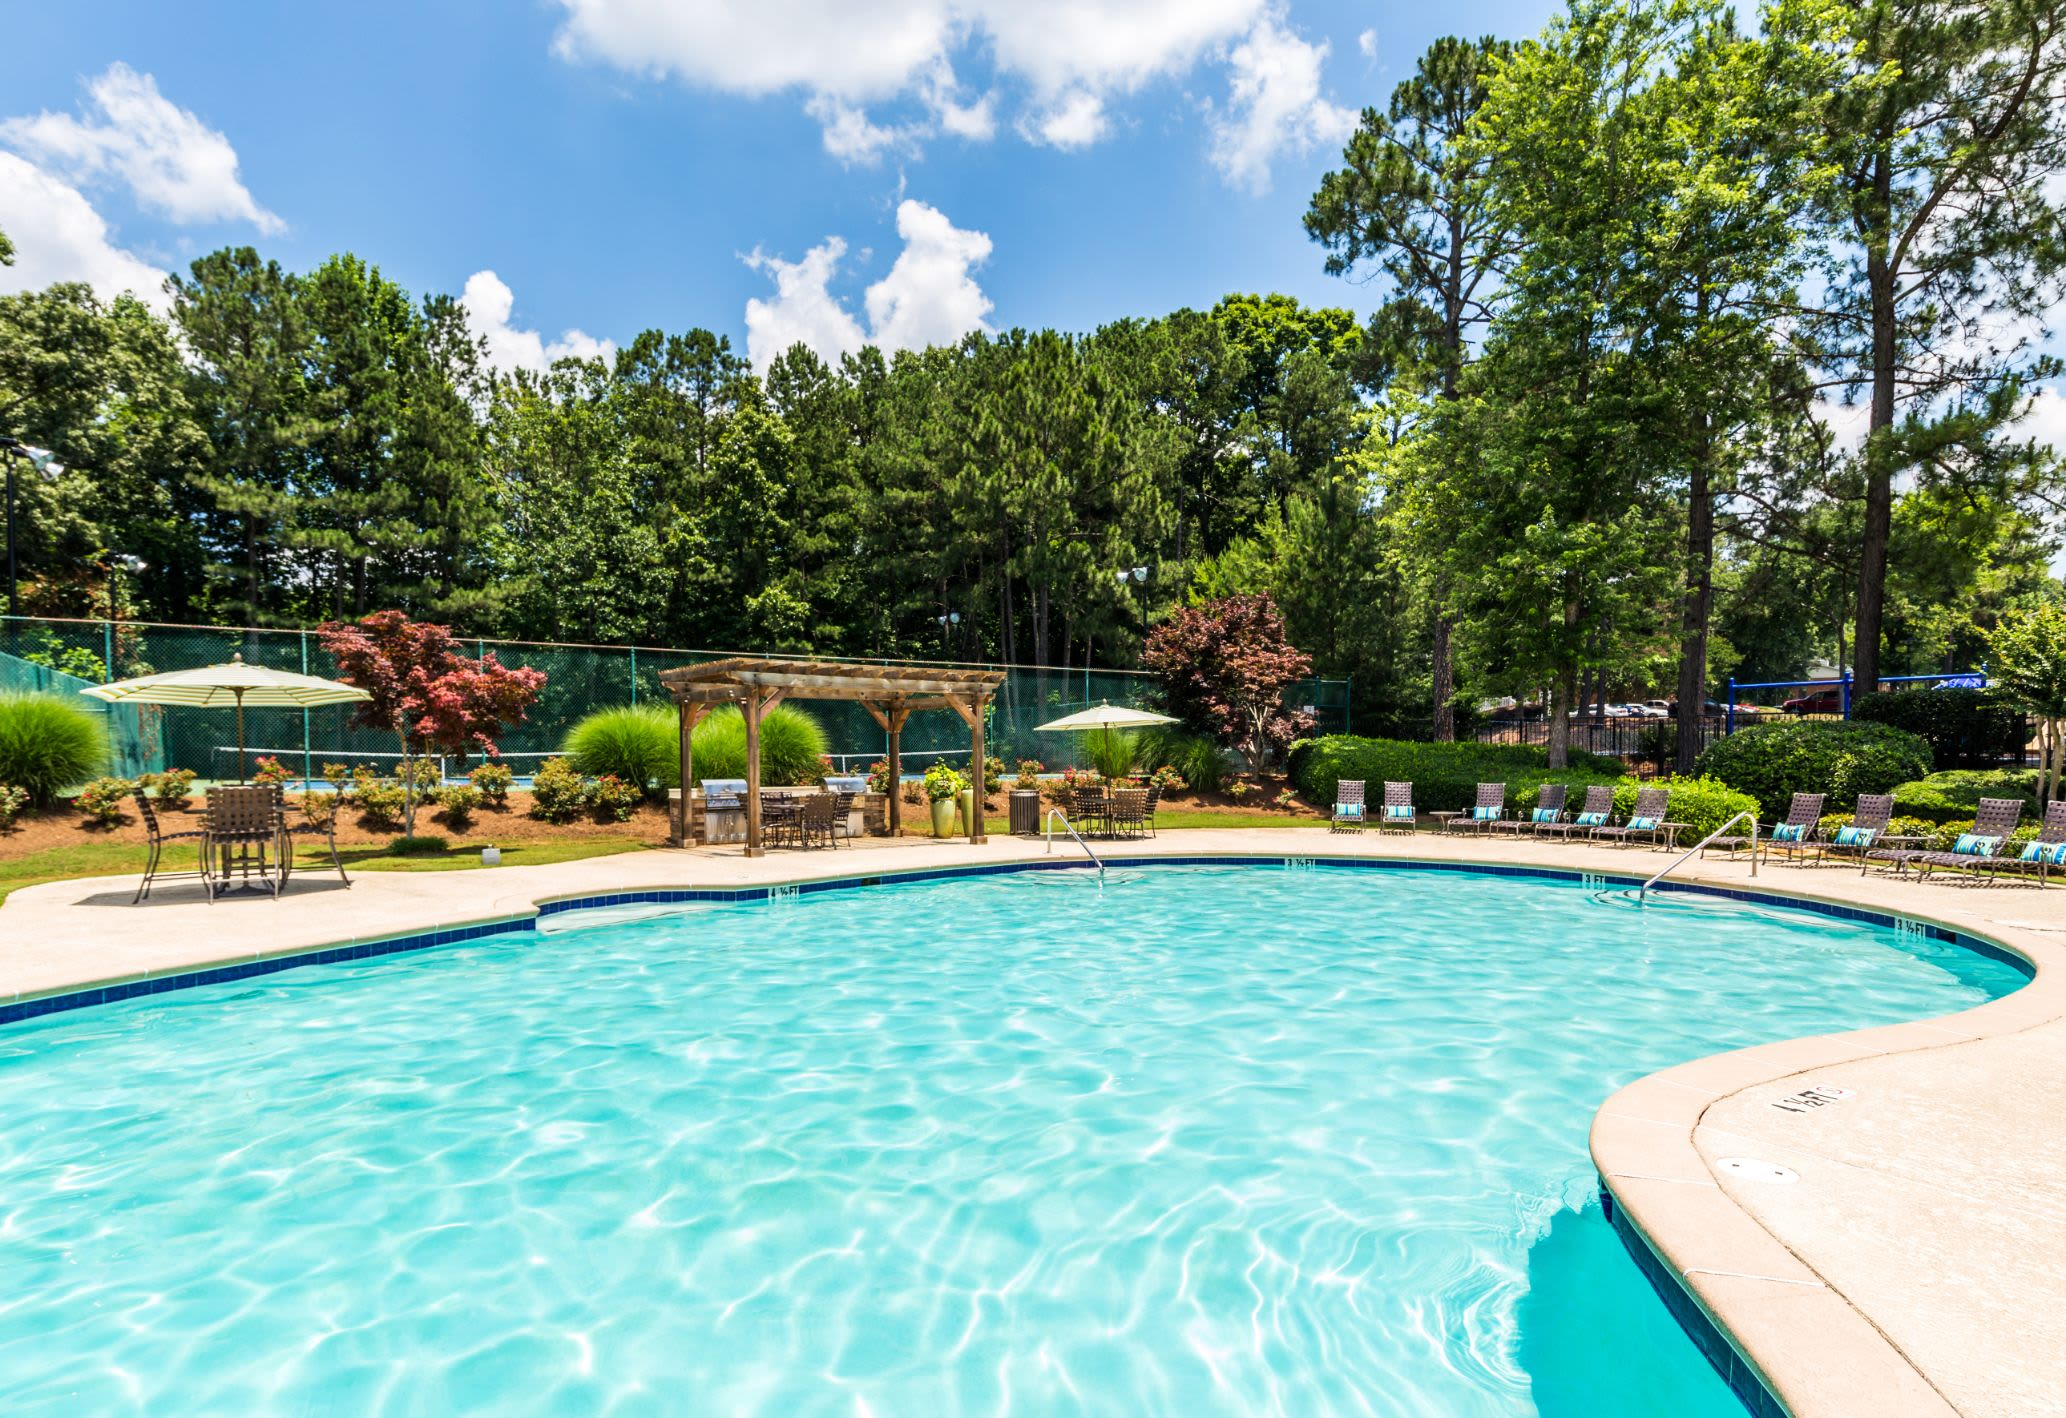 Swimming pool surrounded by trees at Marquis at Perimeter Center in Atlanta, Georgia